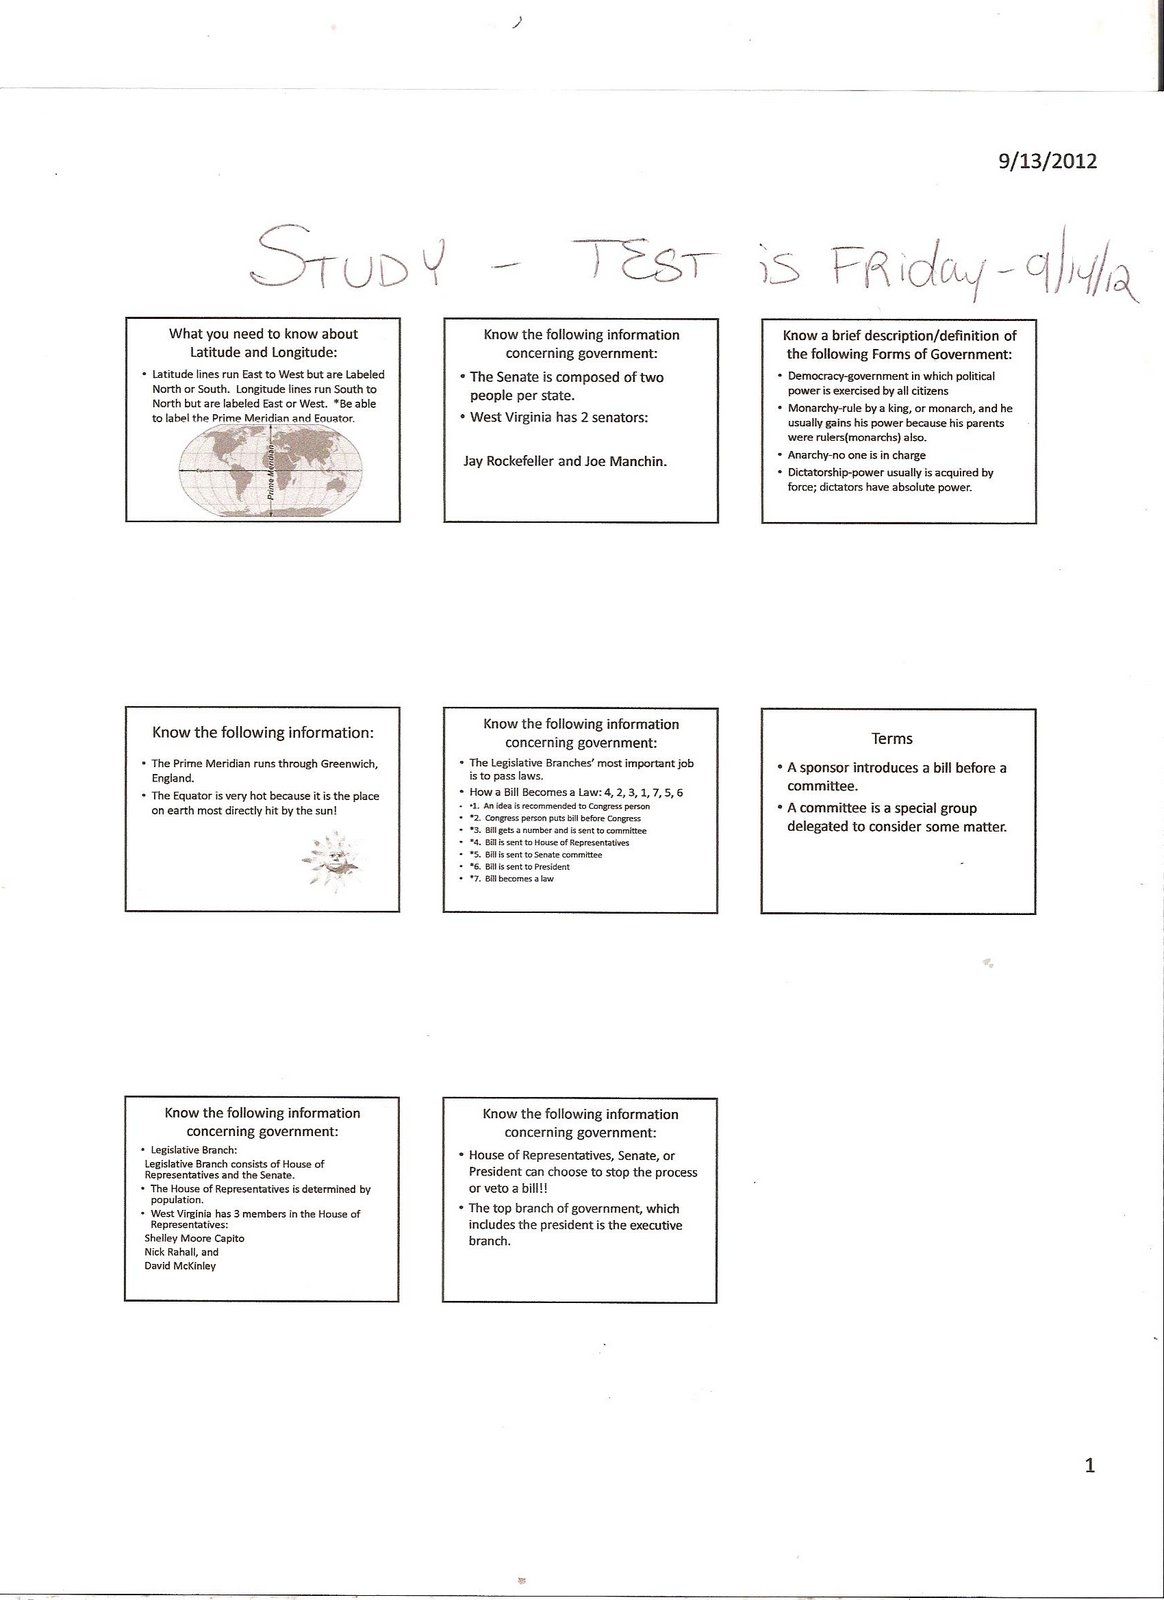 social studies form 2 Educationcom social studies worksheets were made for kids to learn about history, geography, holidays, social skills, communities, government, and more find a selection of social studies graphic organizers, charts, and informational text on classroom topics, interesting facts, and historical figures.